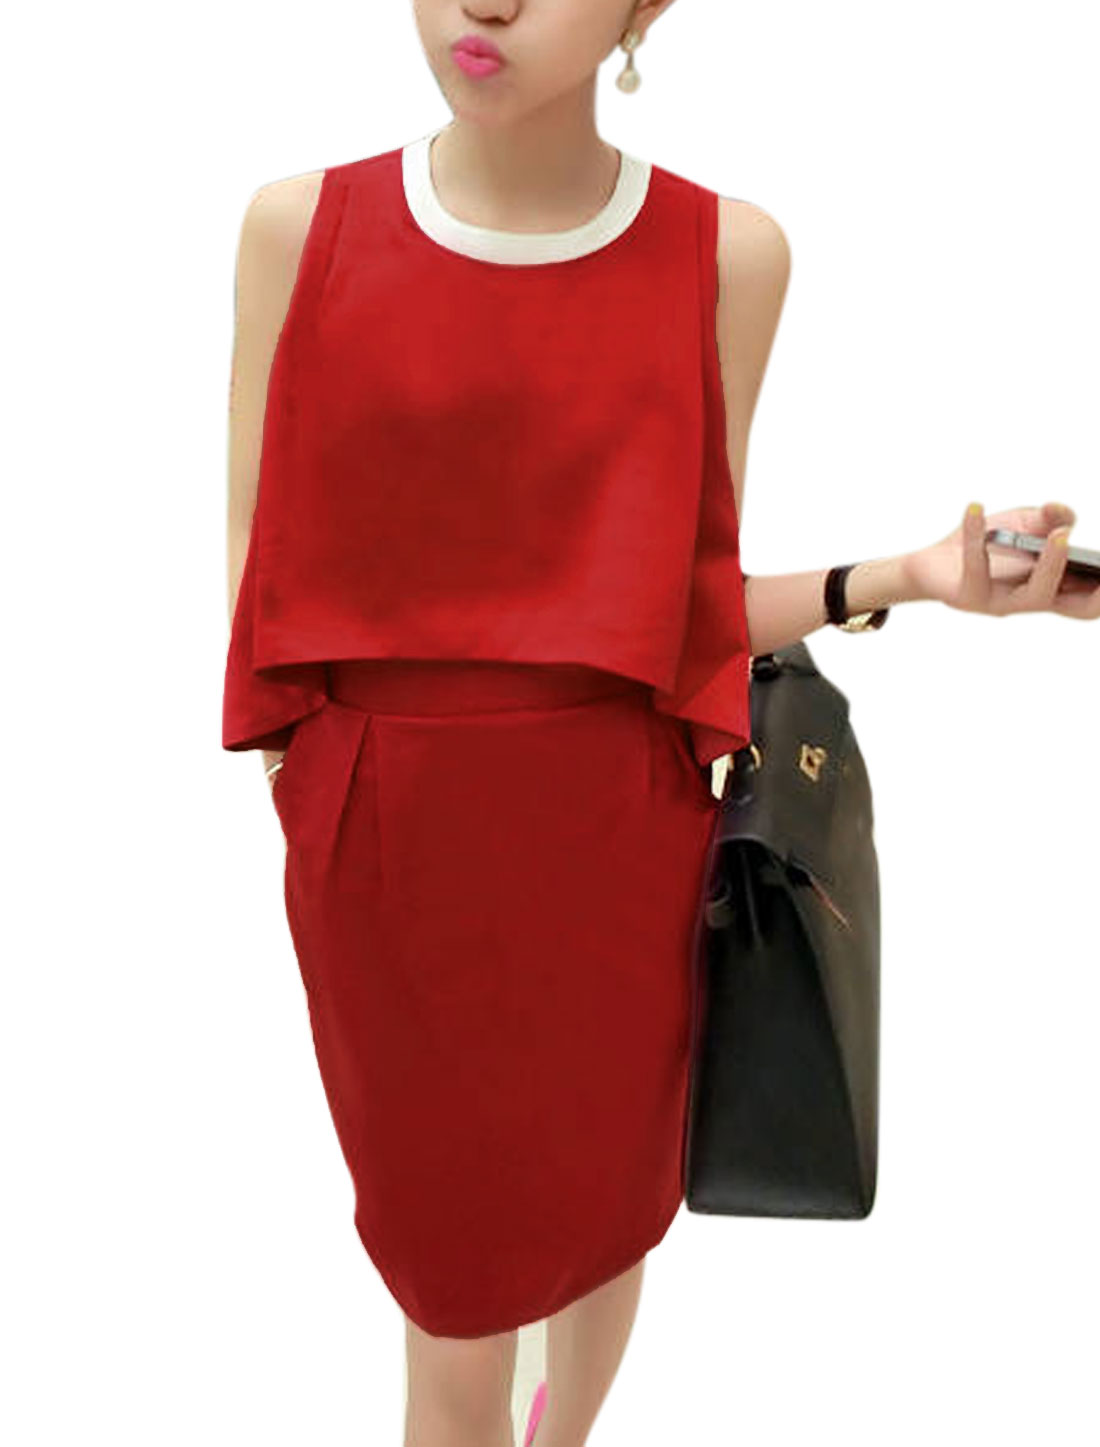 Lady Sleeveless Concealed Zipper Back Layered Design Dress Red M